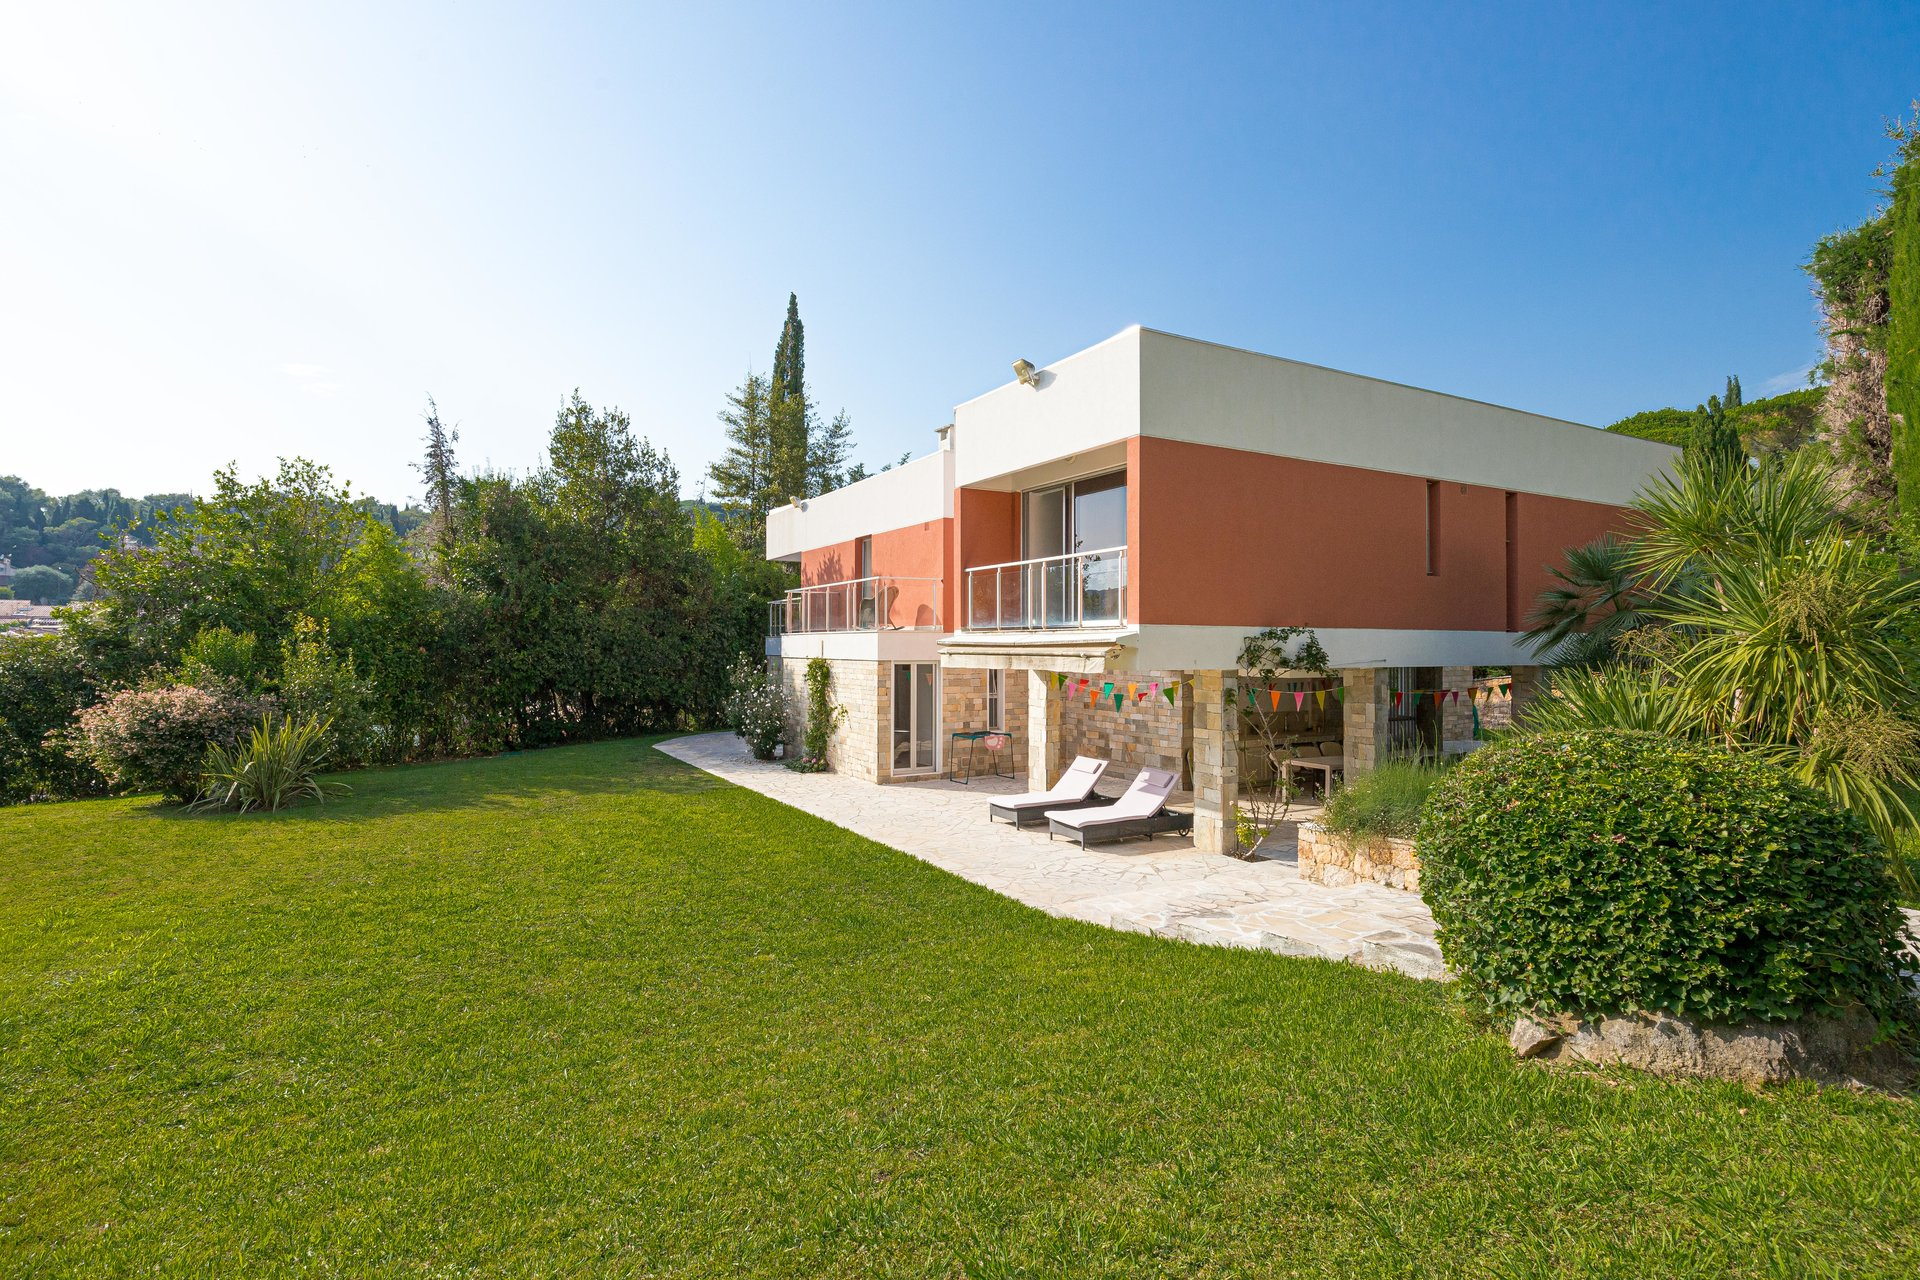 Biot - Large villa in guarded residence with pool and tennis. Mint condition. SOLE AGENT!